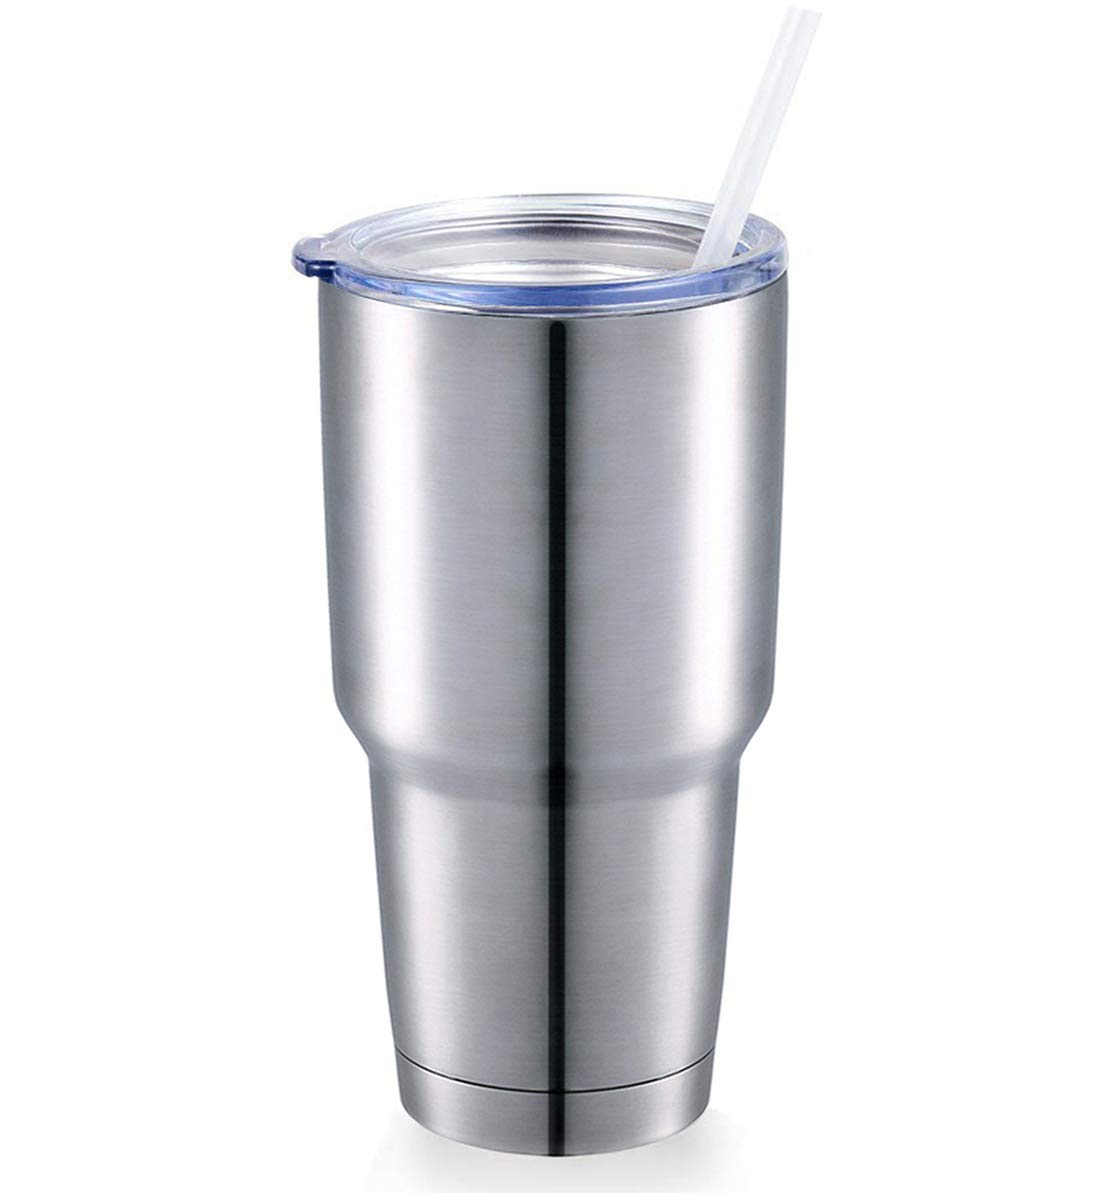 Unibody Stainless Coffee Cup - Classic Vacuum Insulated Tumbler Travel Mug With Lid, Straws